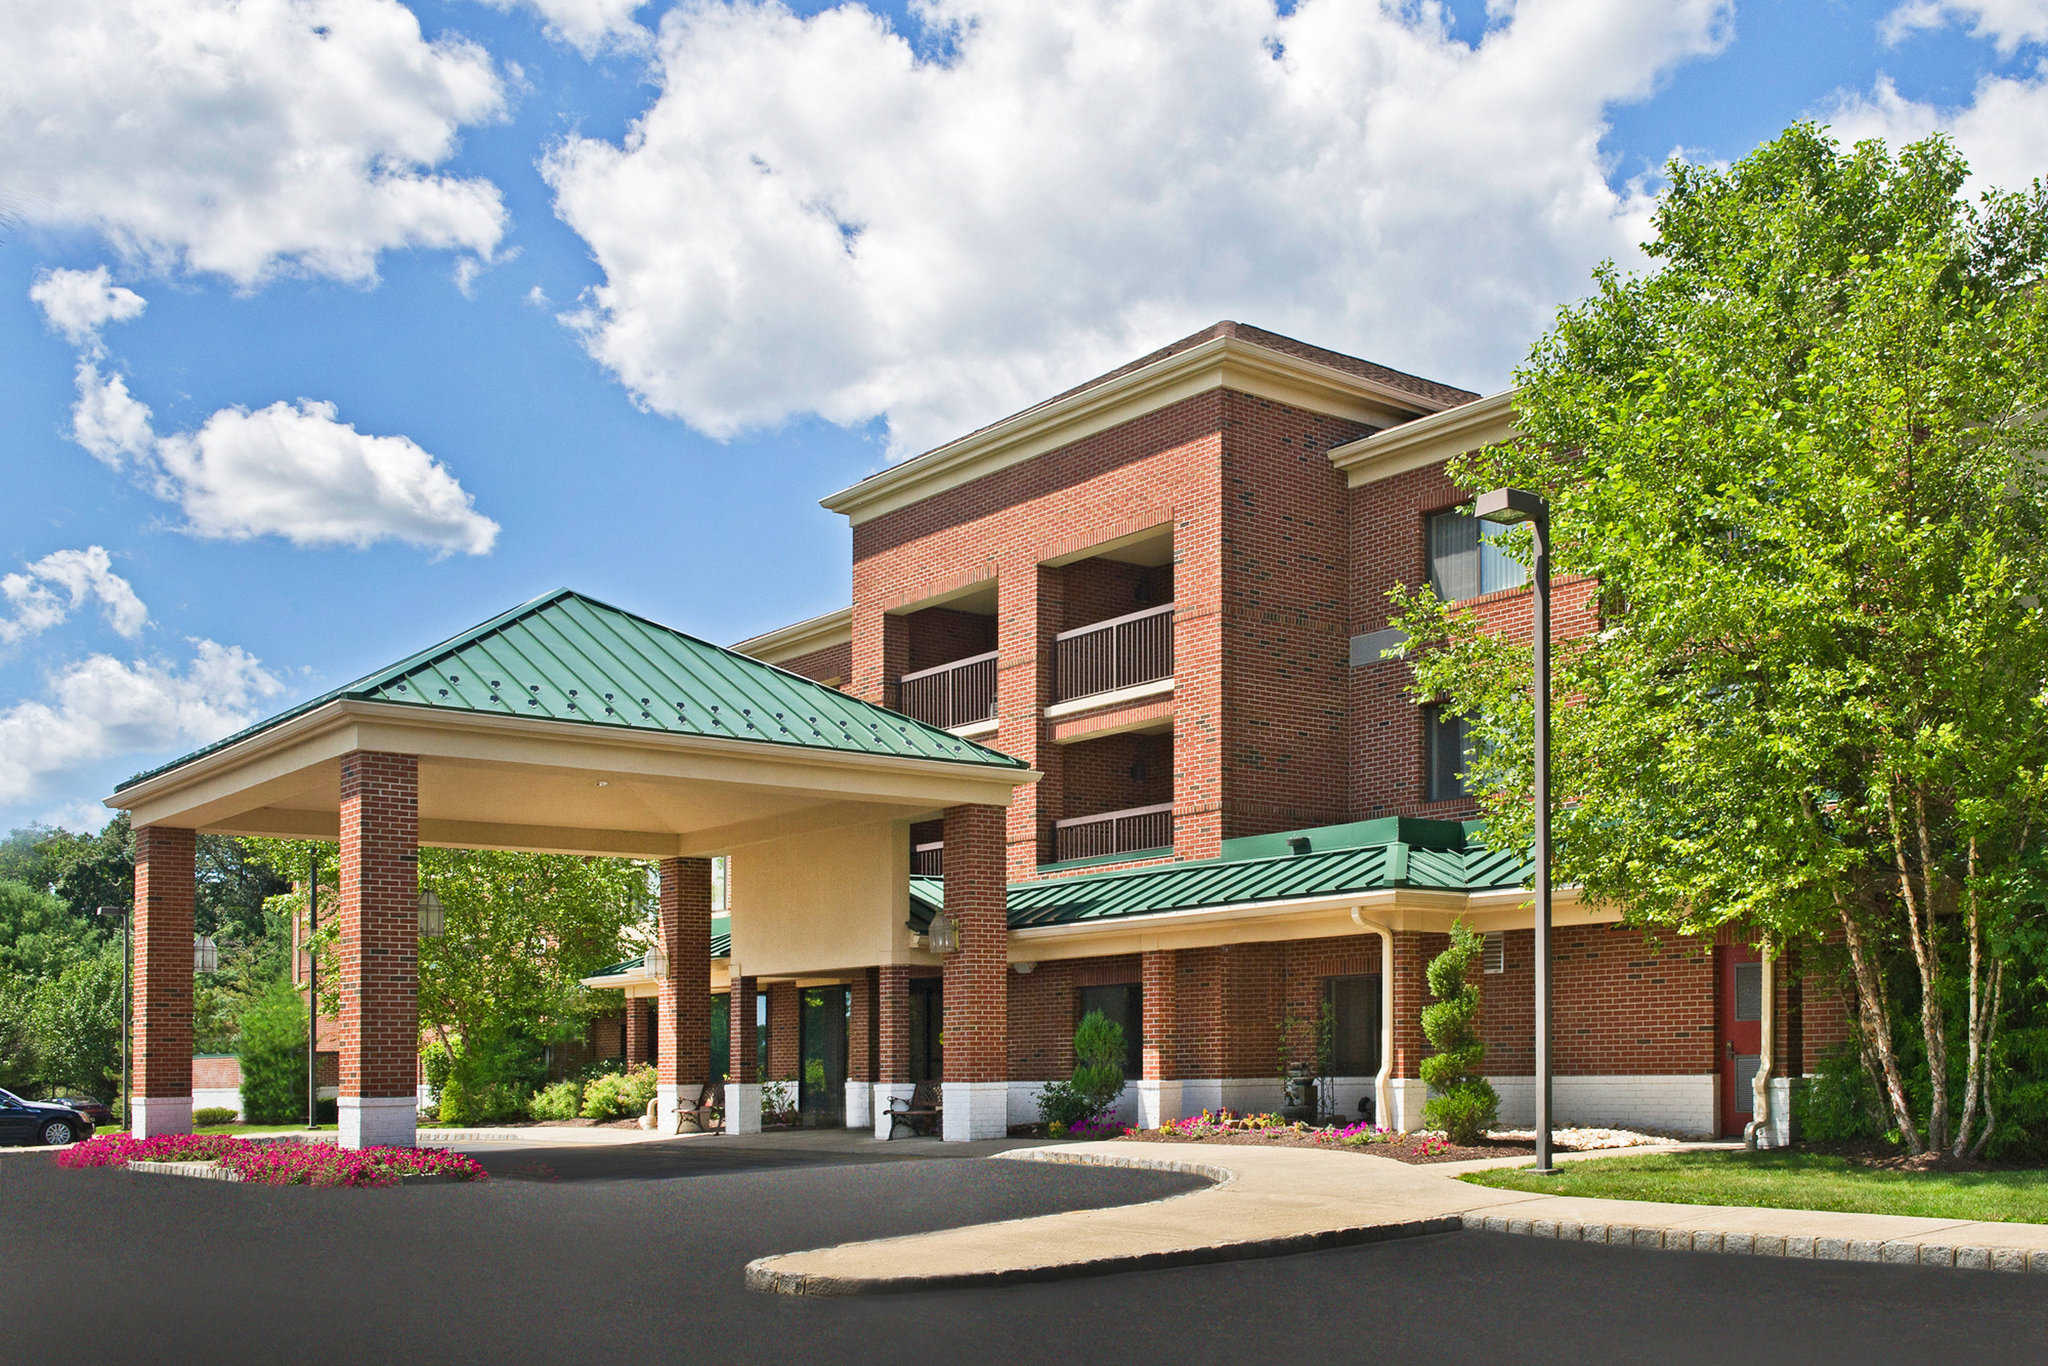 Courtyard Parsippany Marriott